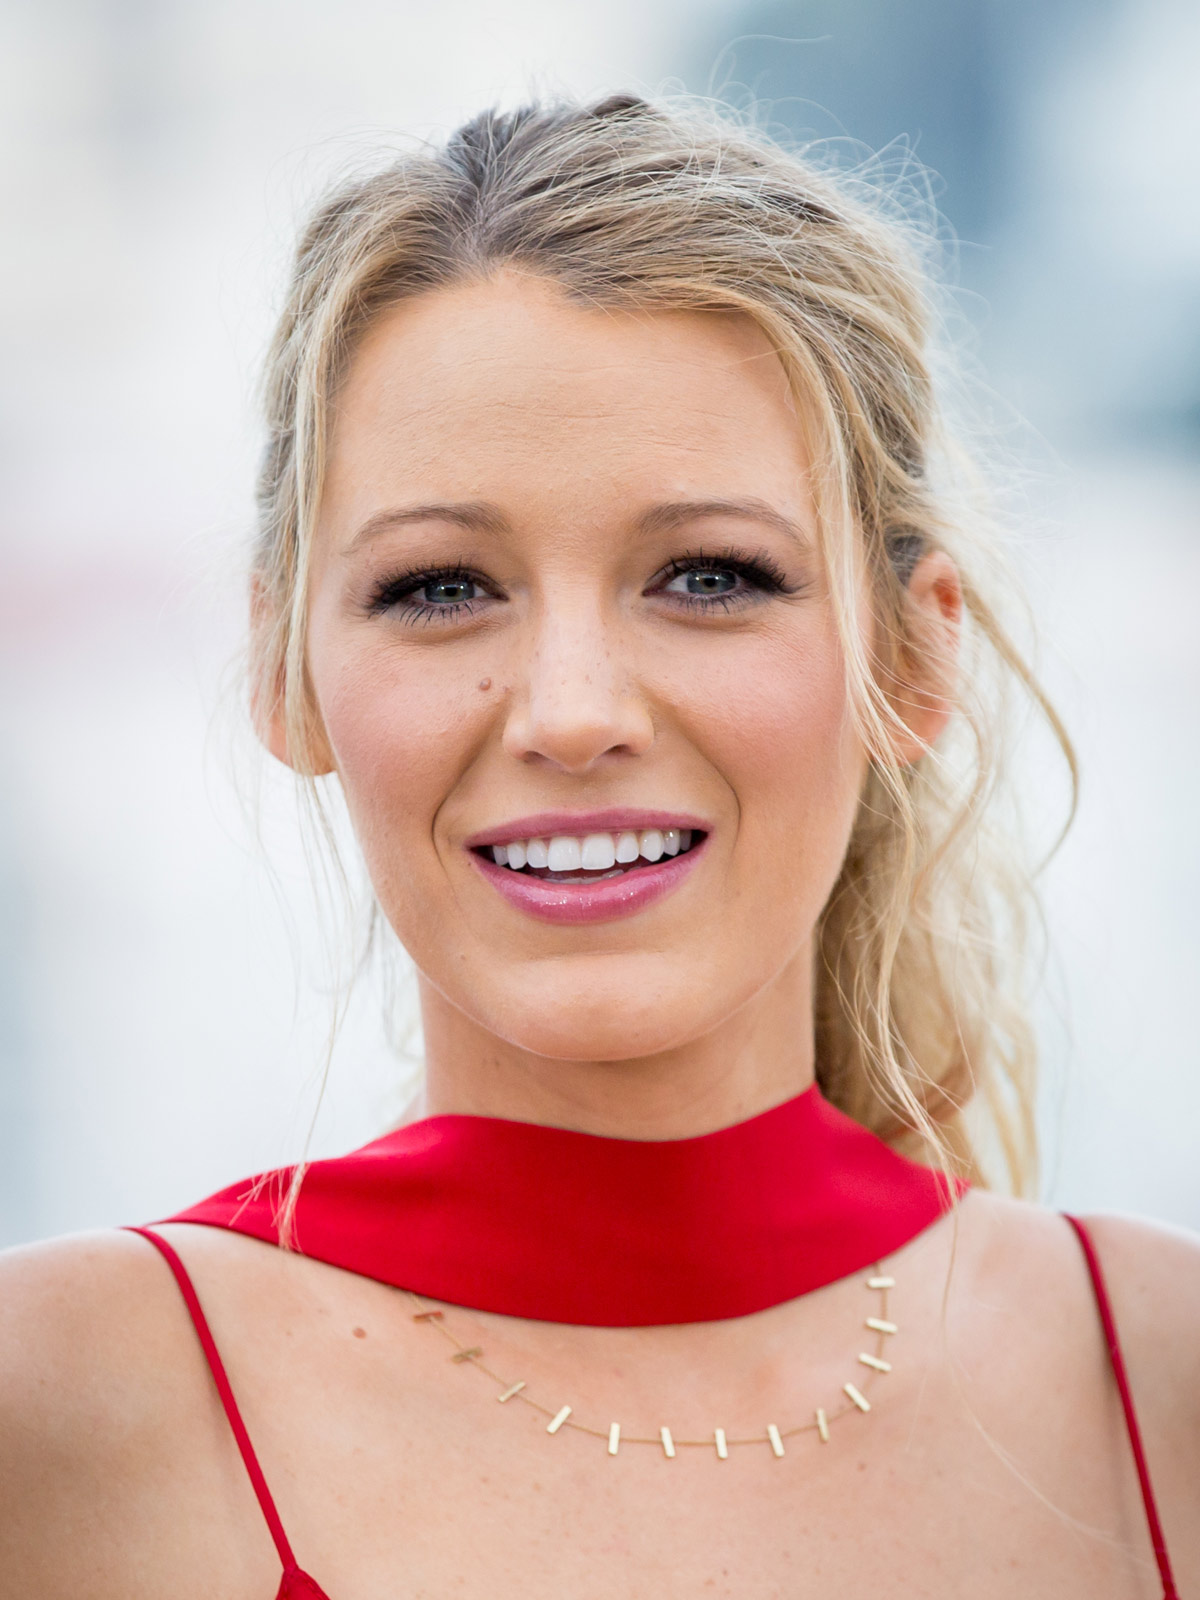 Blake Lively - AlloCin... Blake Lively